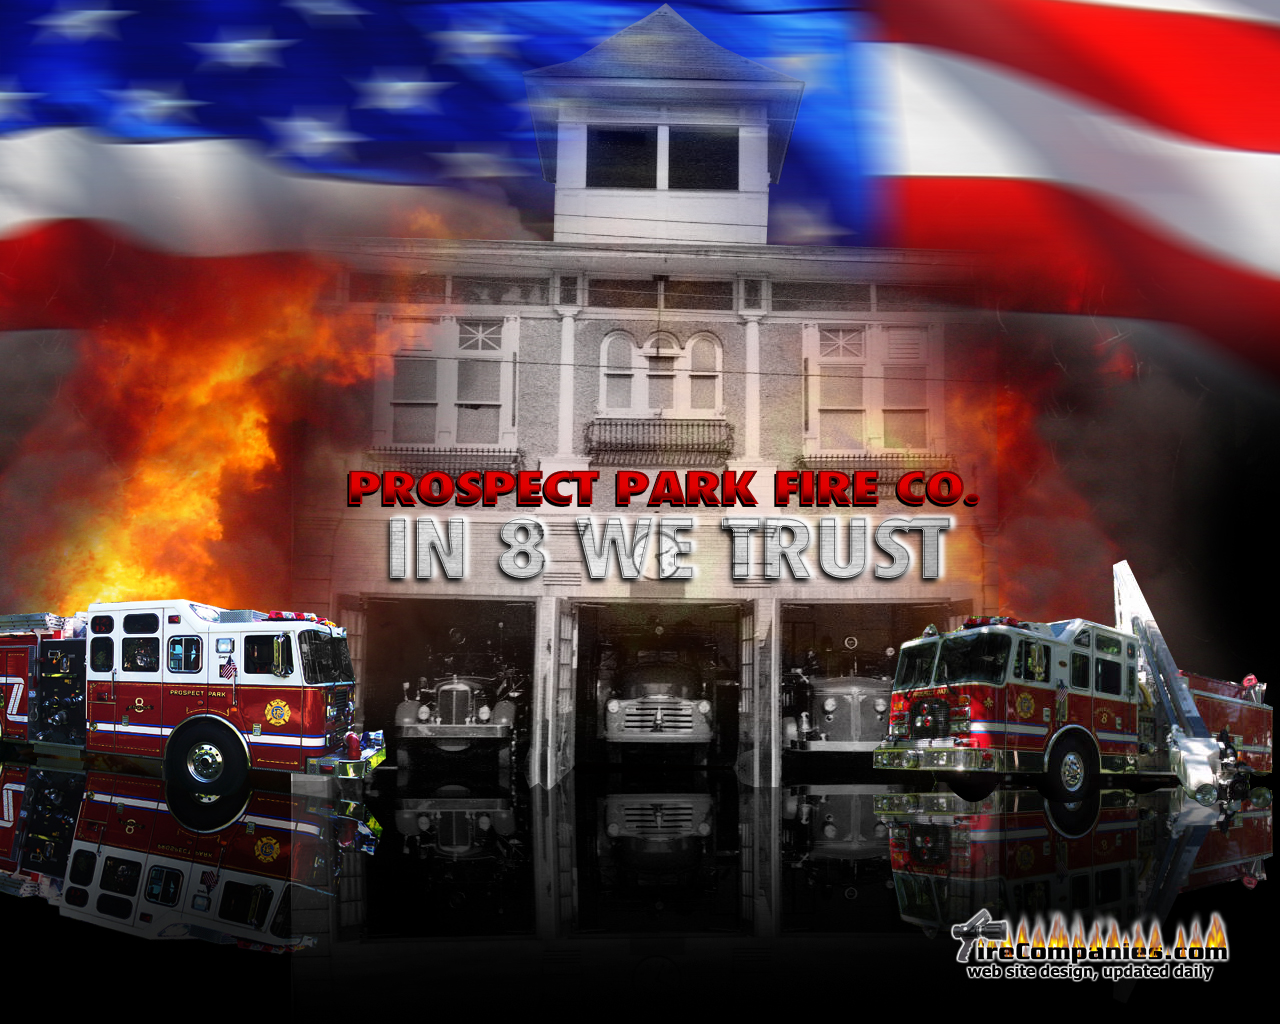 Welcome to Prospect Park Fire Co 1280x1024